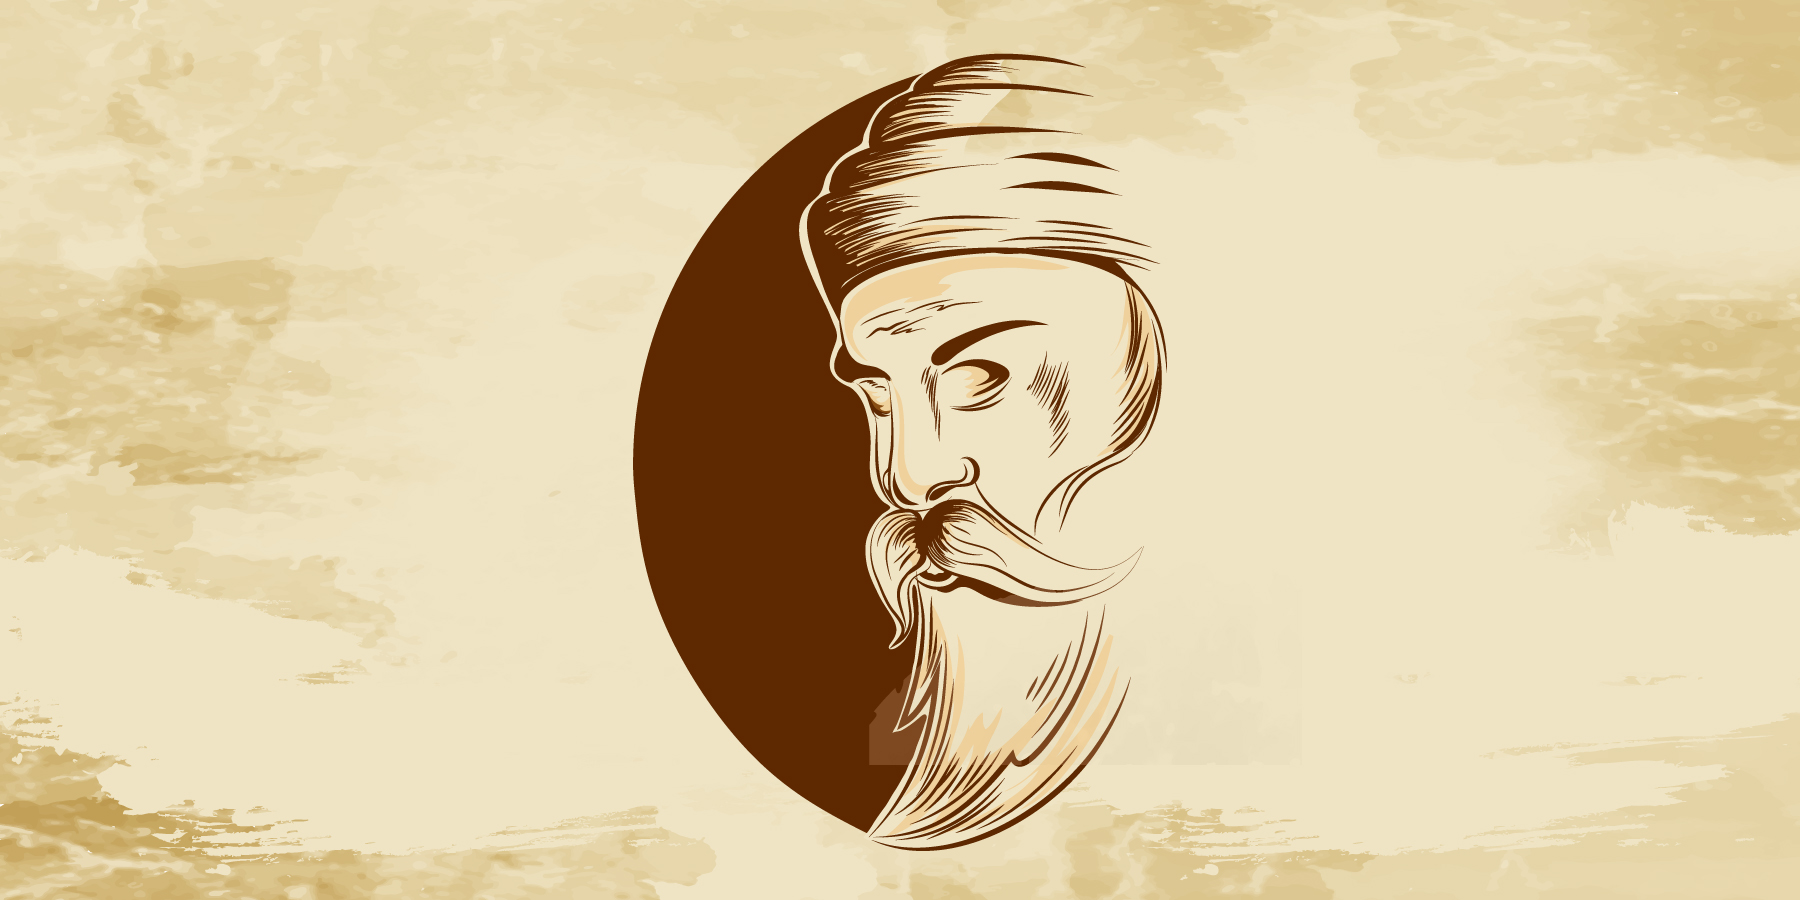 Nanak: One with the radiant light